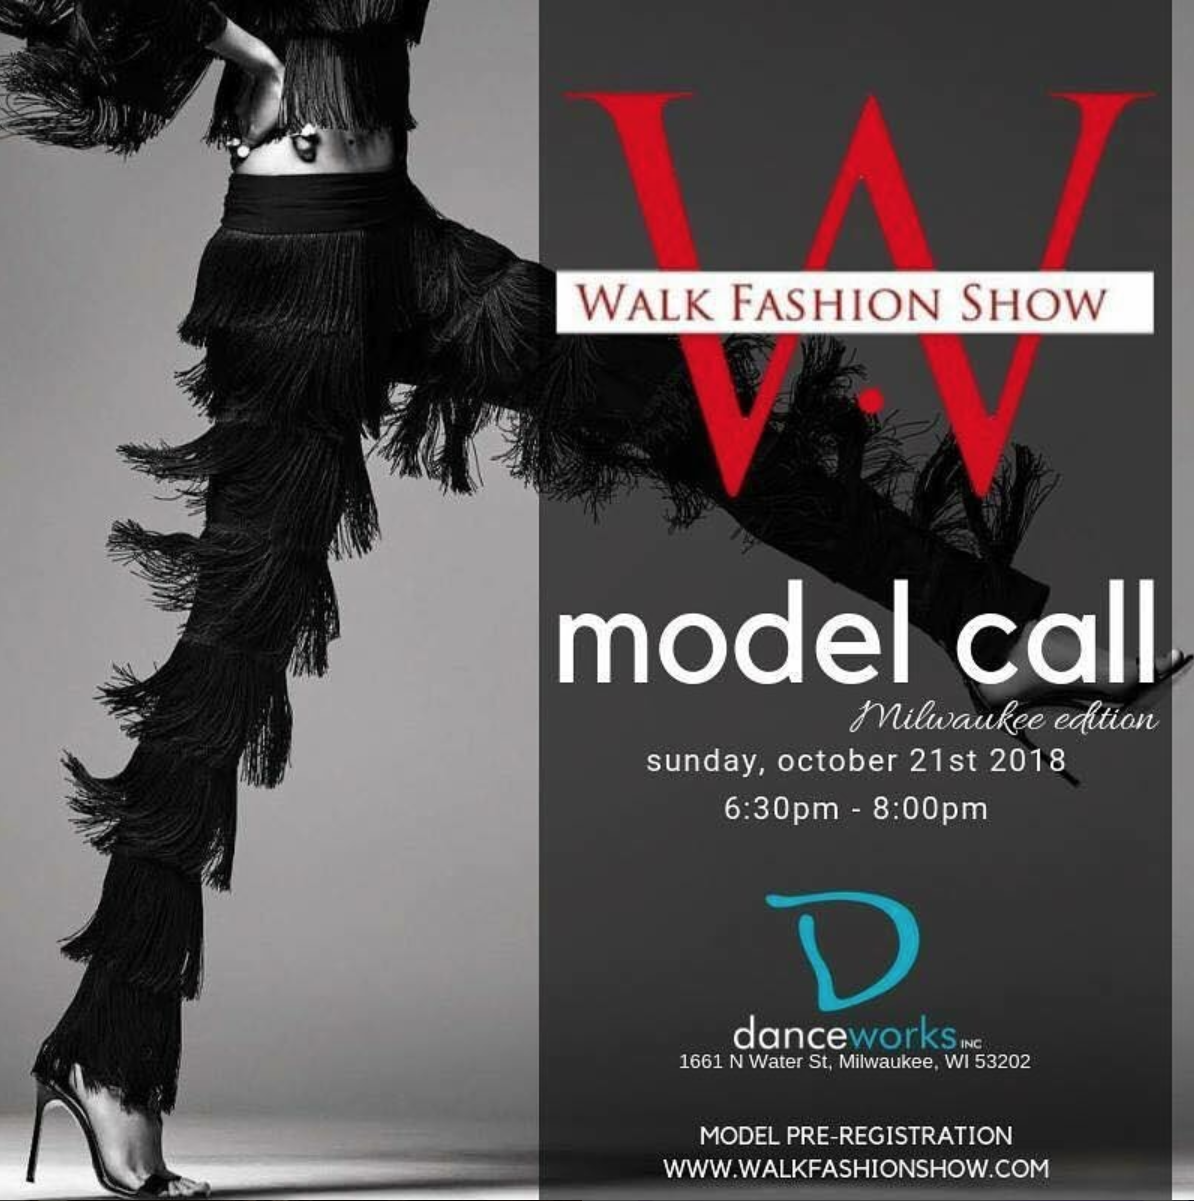 walk fashion show model call milwaukee